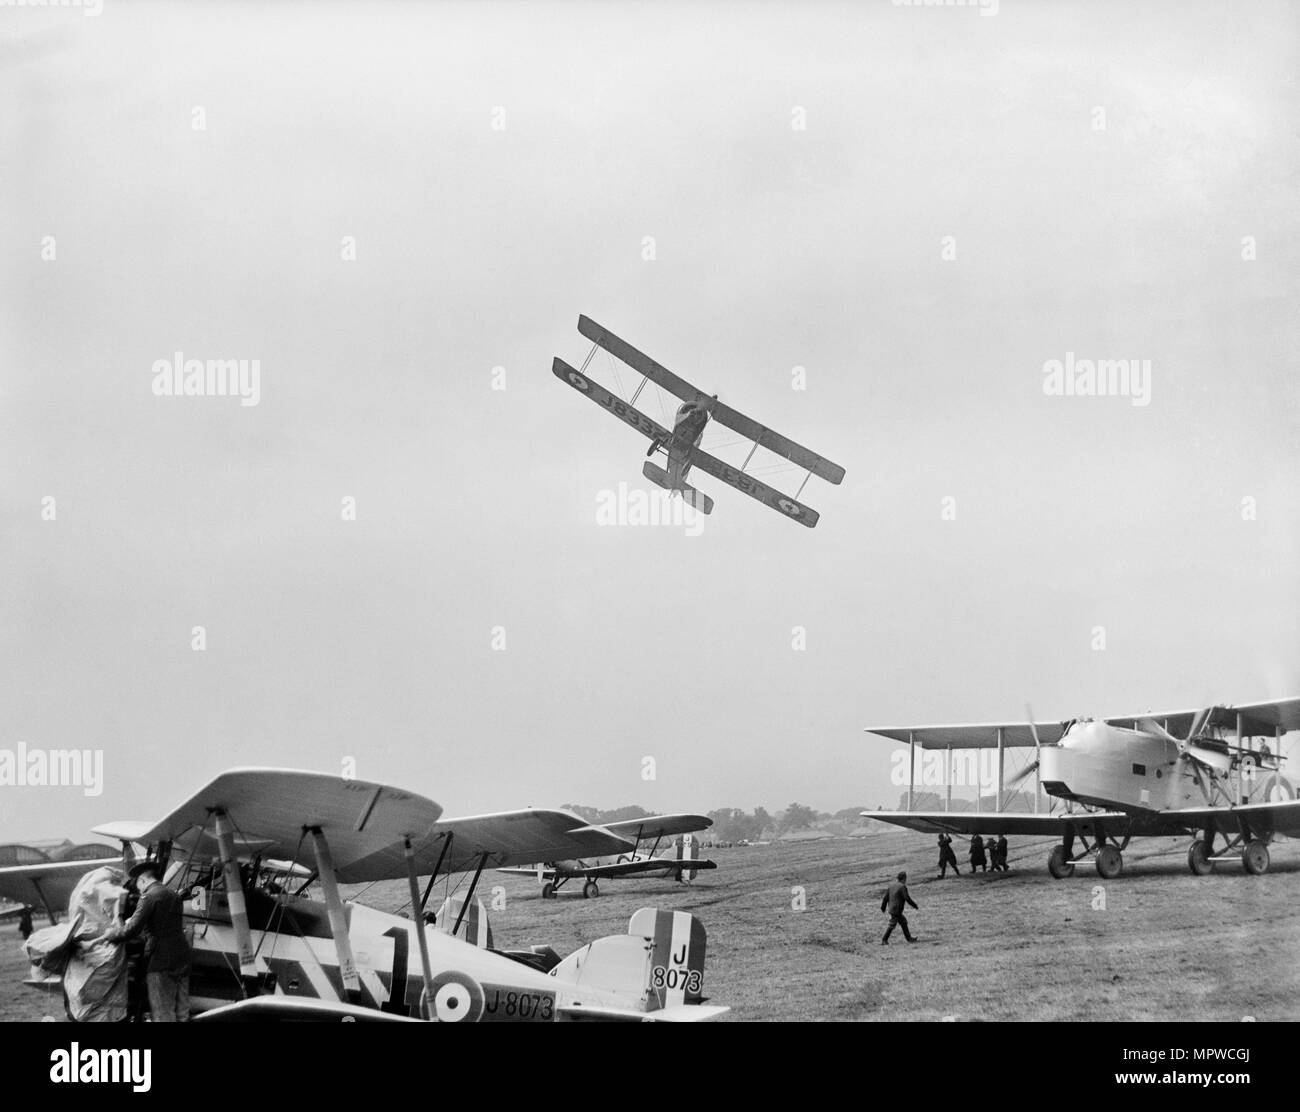 Avro 504 biplane flying very low over parked aircraft at the RAF Pageant, Hendon, London, 1927. Artist: Aerofilms. - Stock Image